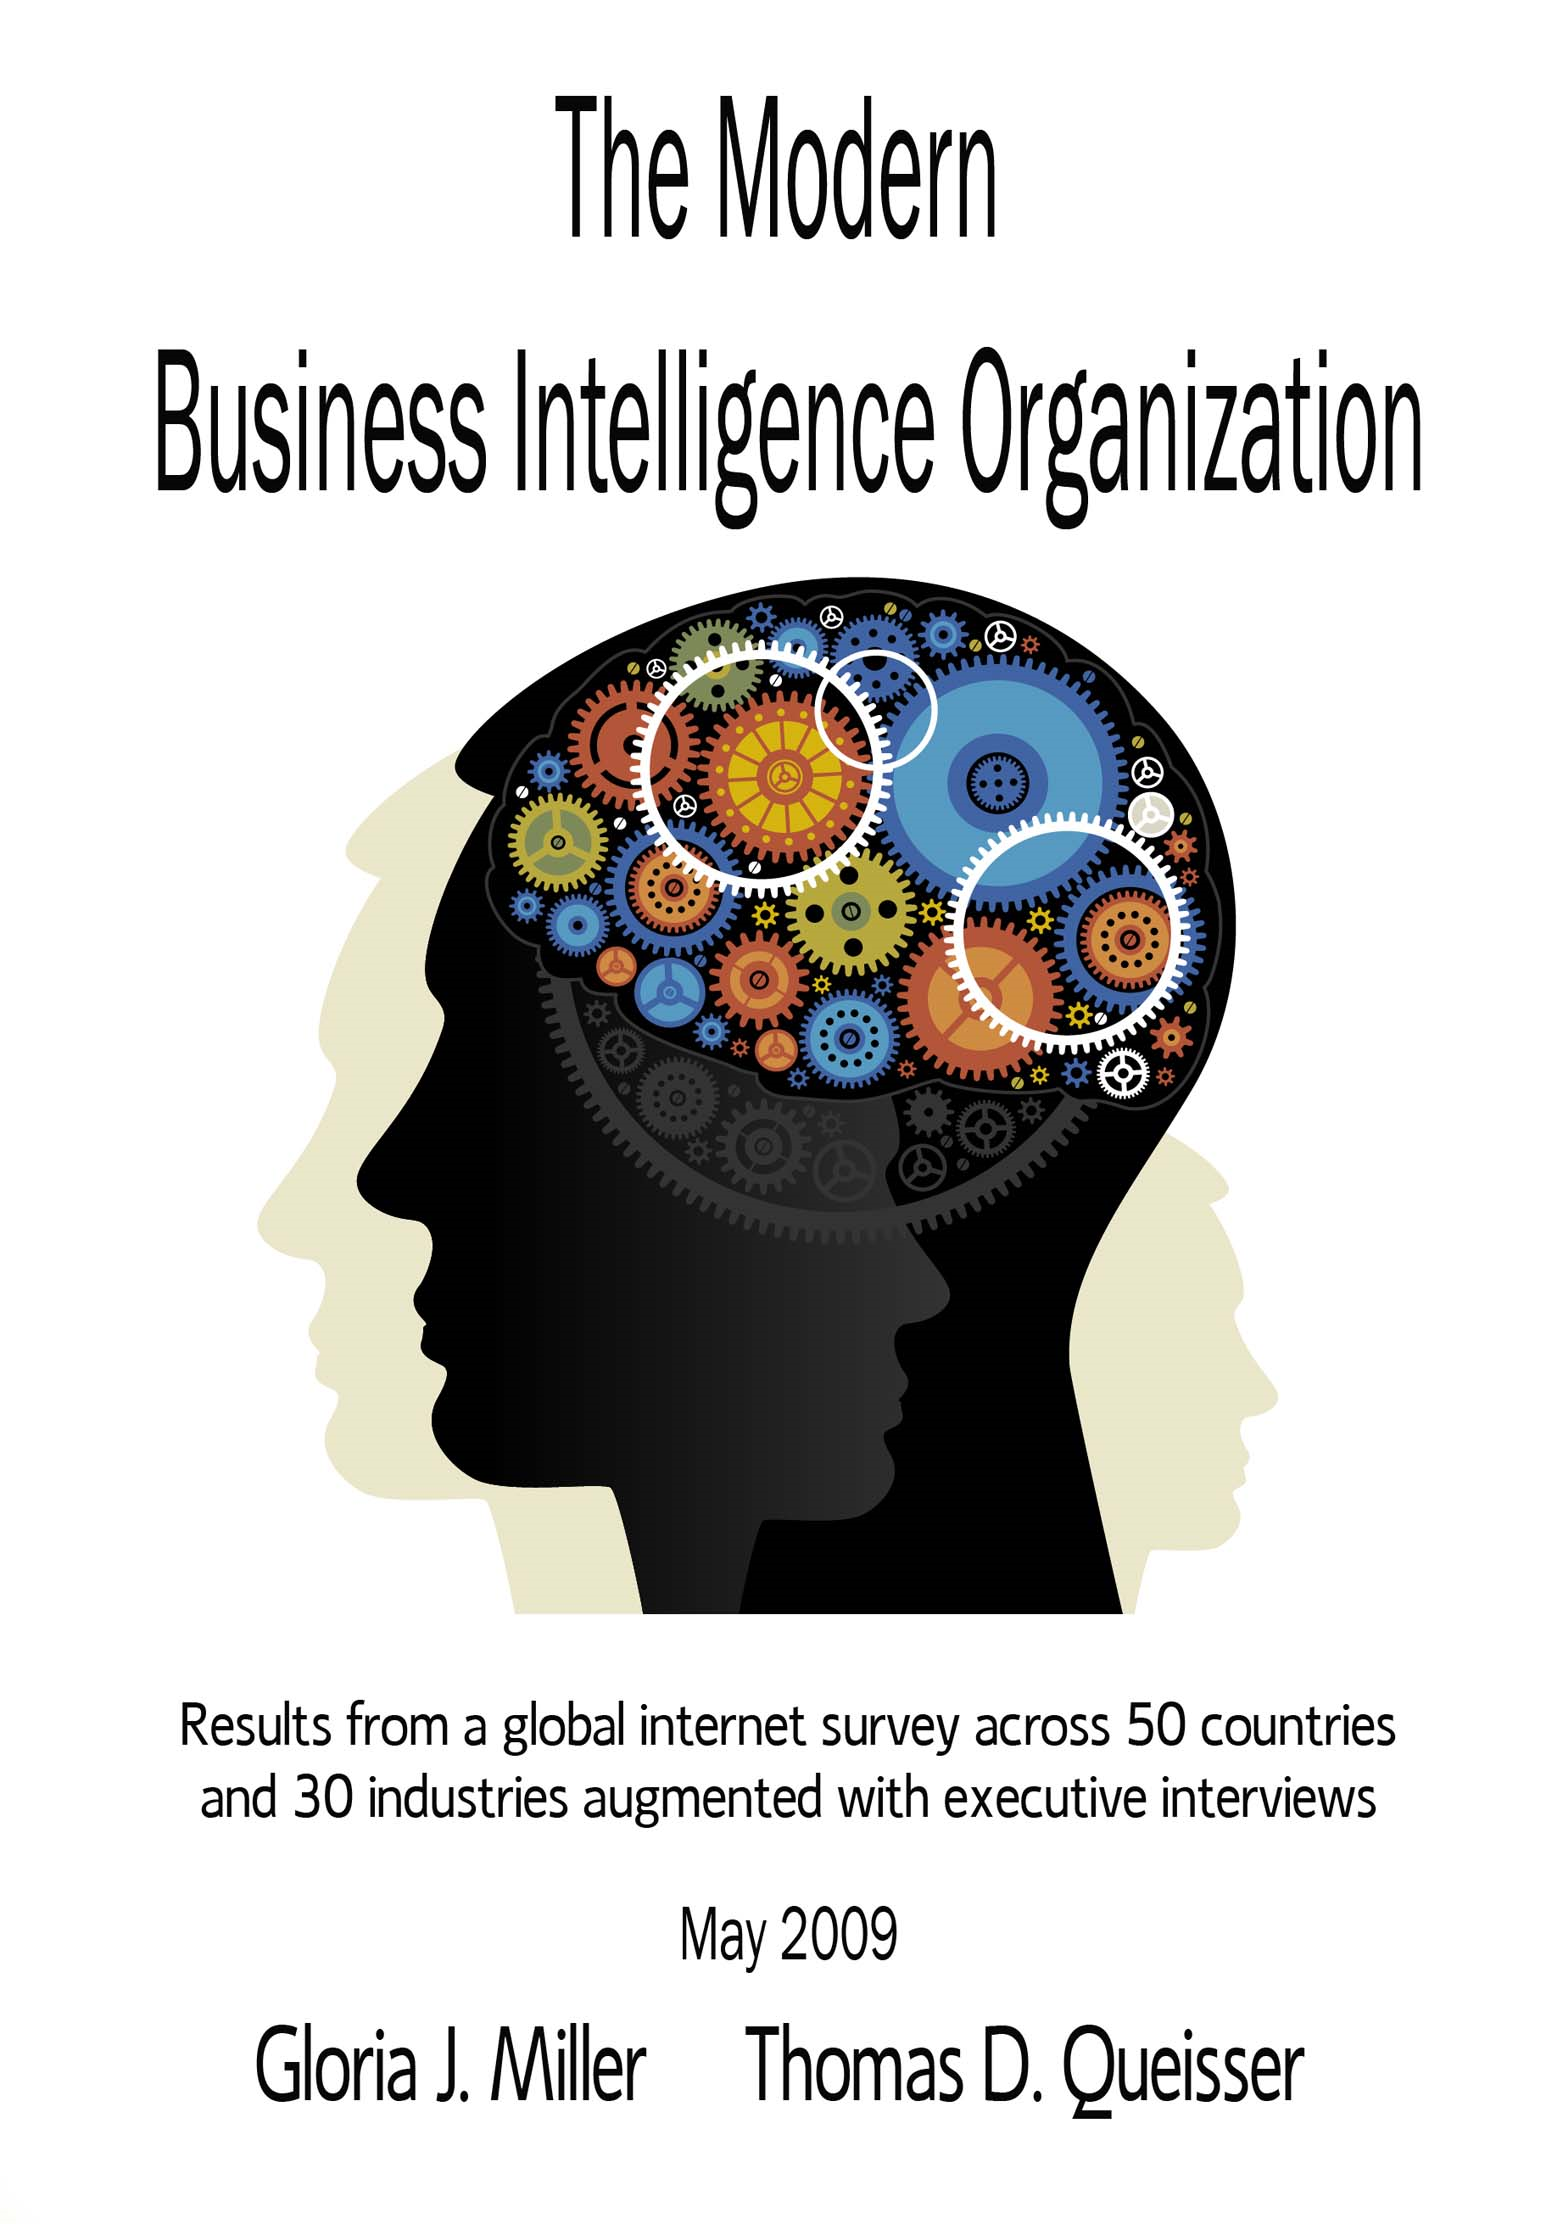 The Modern Business Intelligence Organization